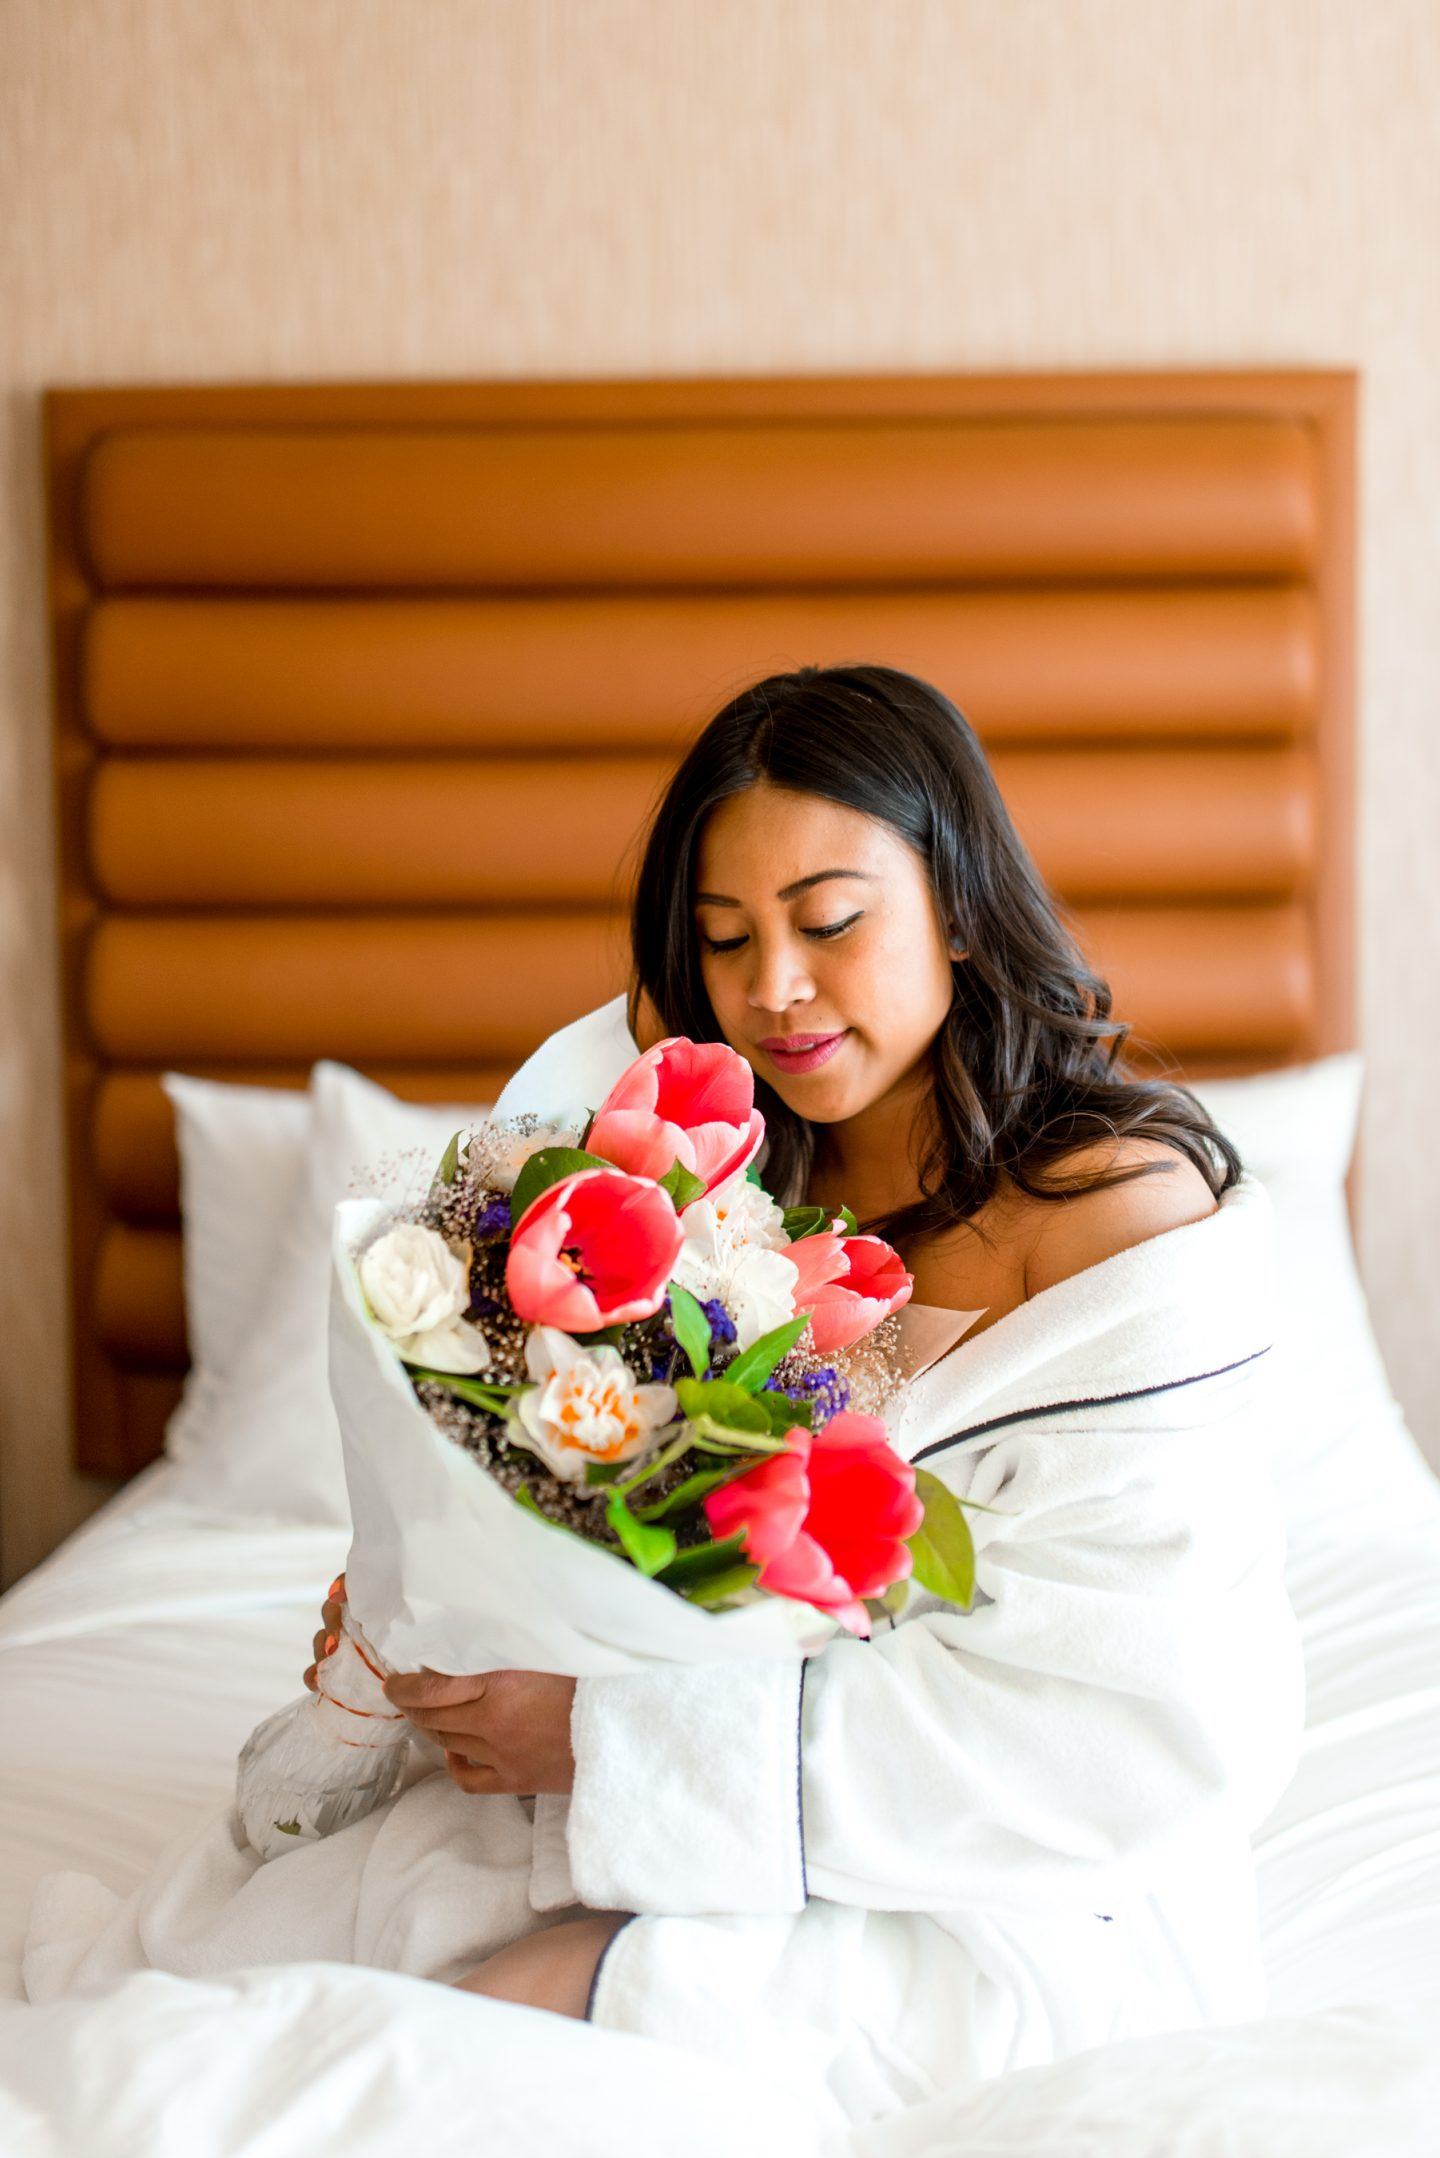 bouquet of flowers in hotel bed - emmas edition - portland hotel - dossier hotel